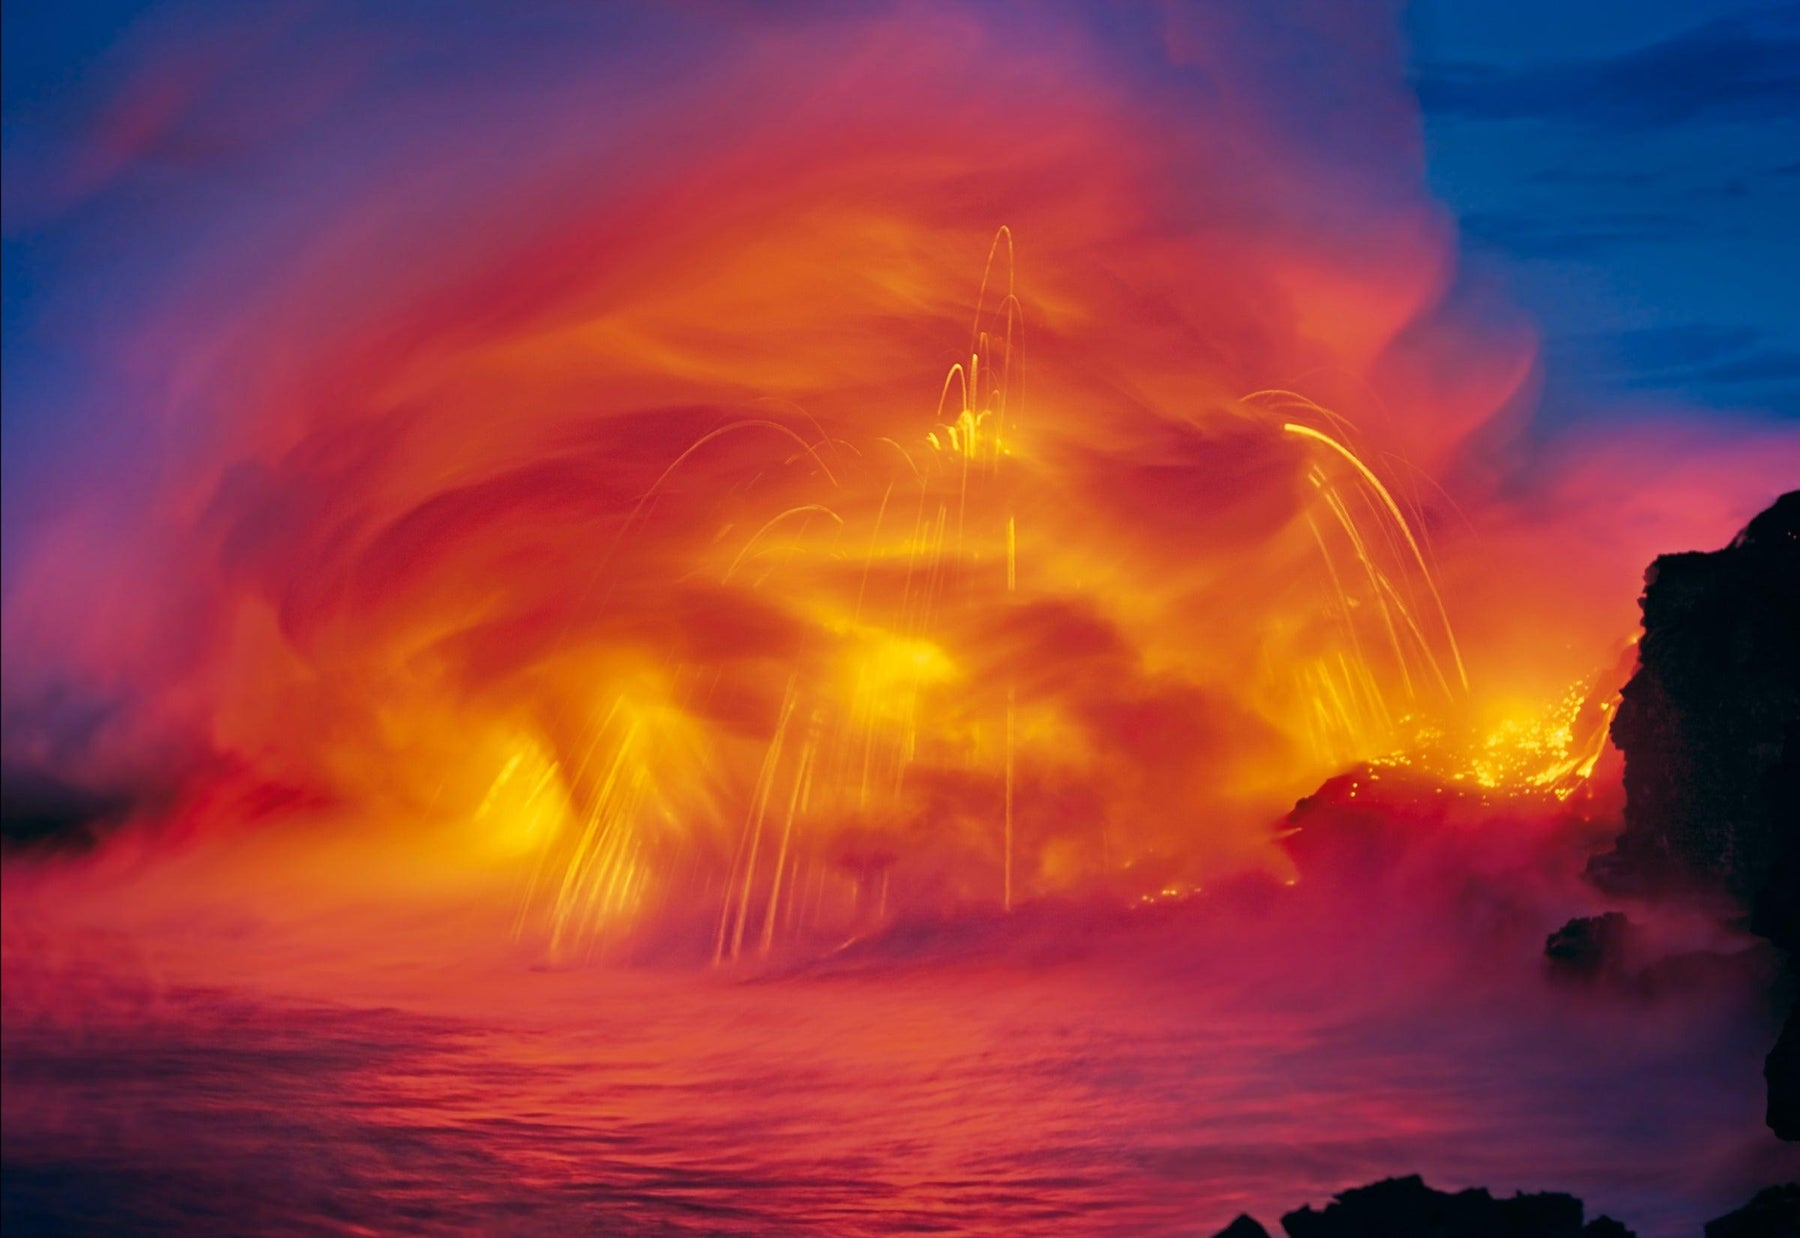 Blurred explosion of fire and lava hitting the ocean water on the shoreline of Kilauea Hawaii